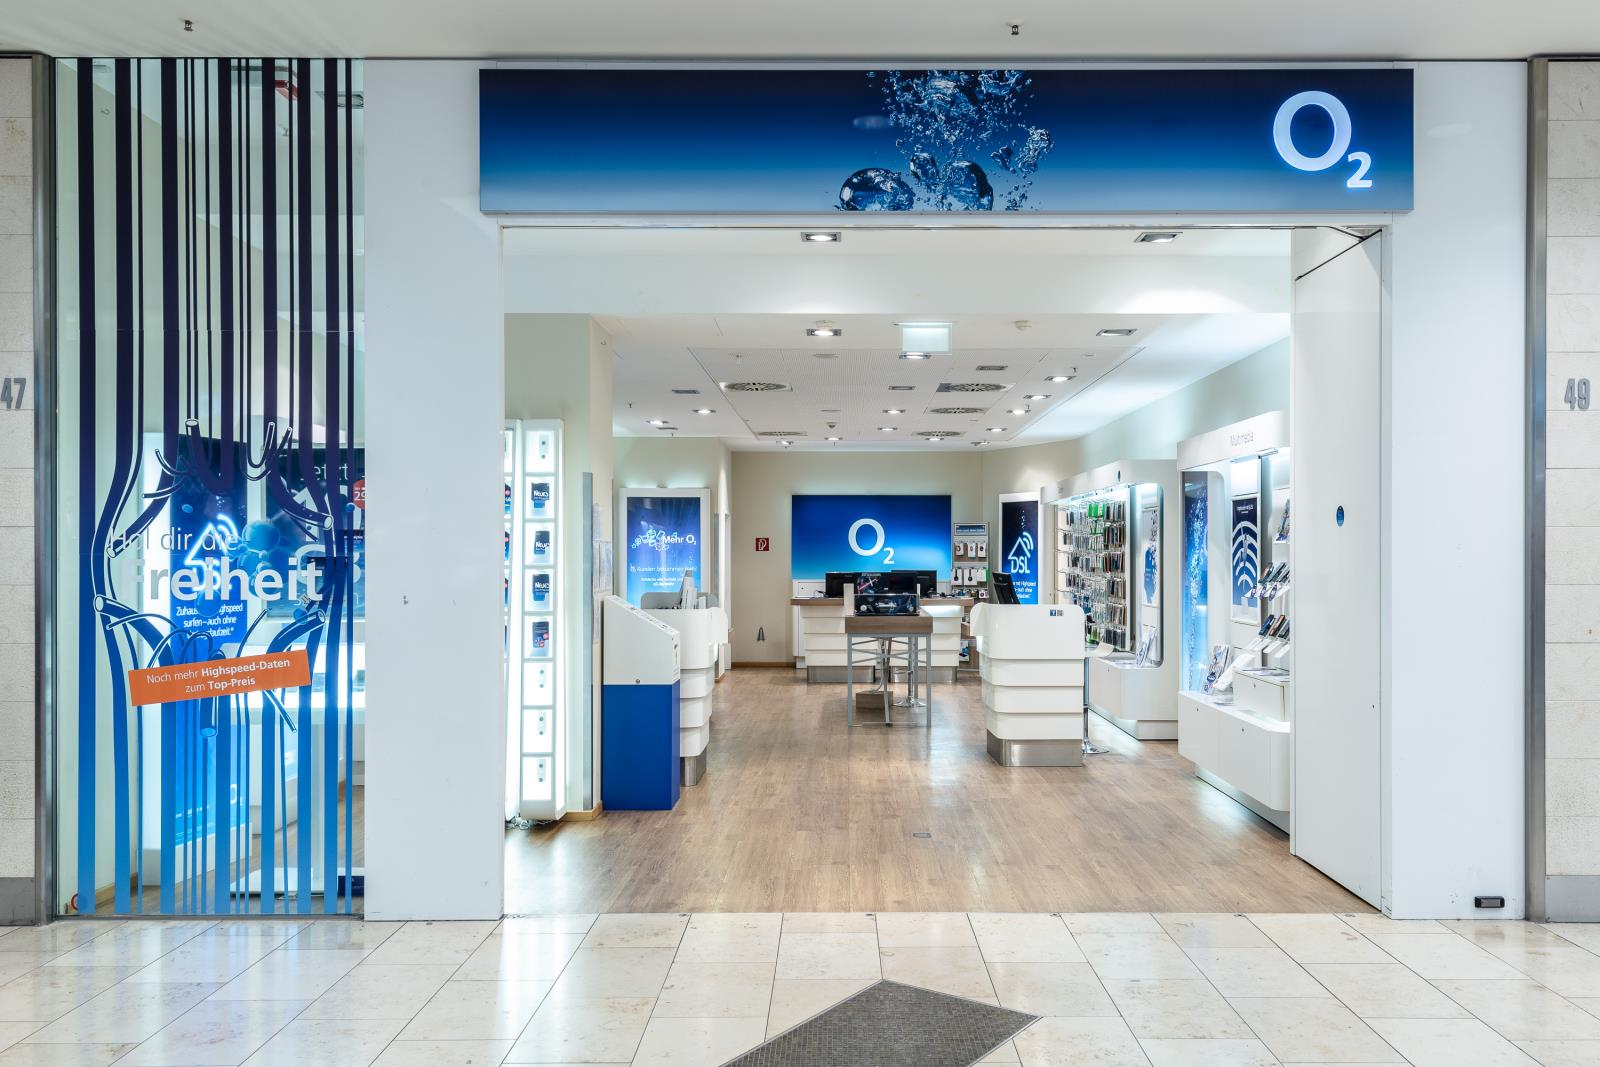 o2 Shop, Limbecker Platz 1a in Essen